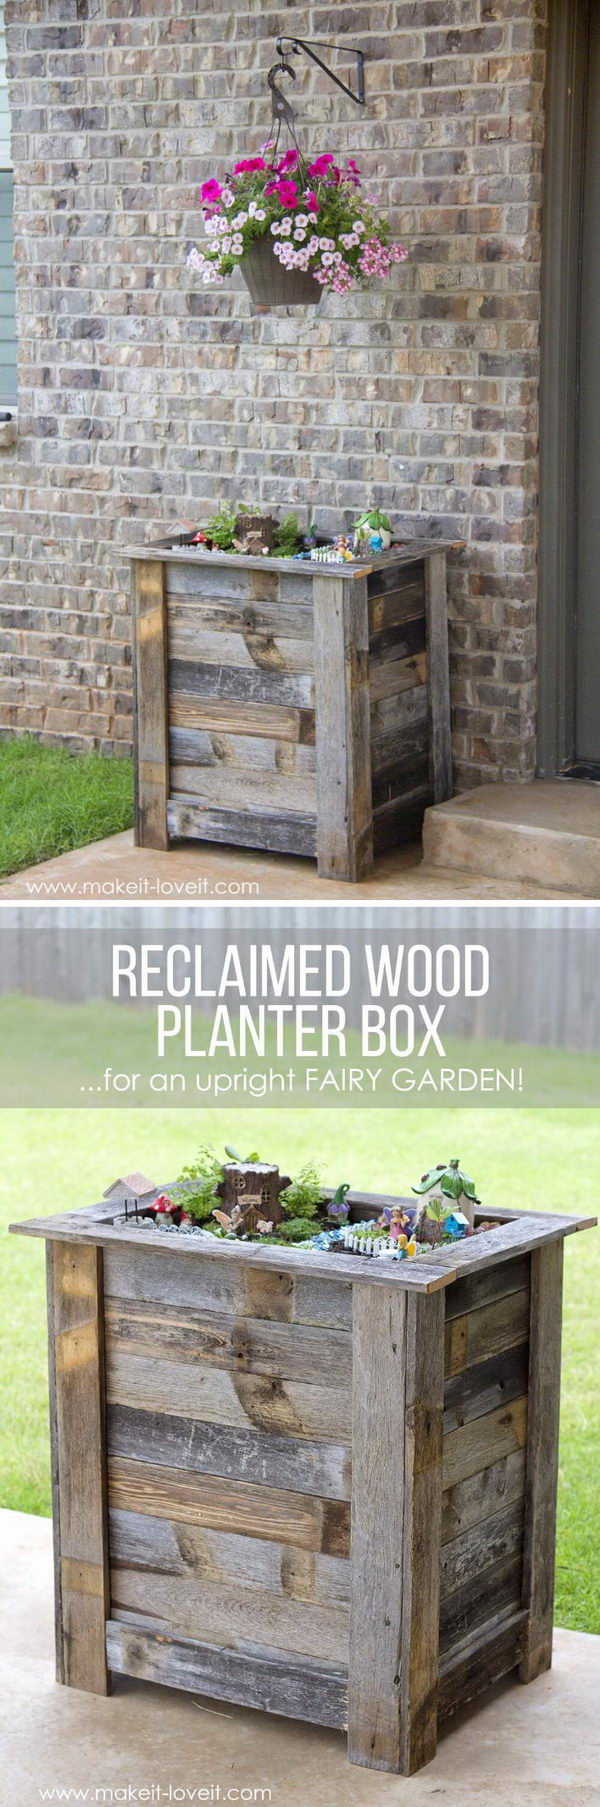 Creative Diy Wood And Pallet Planter